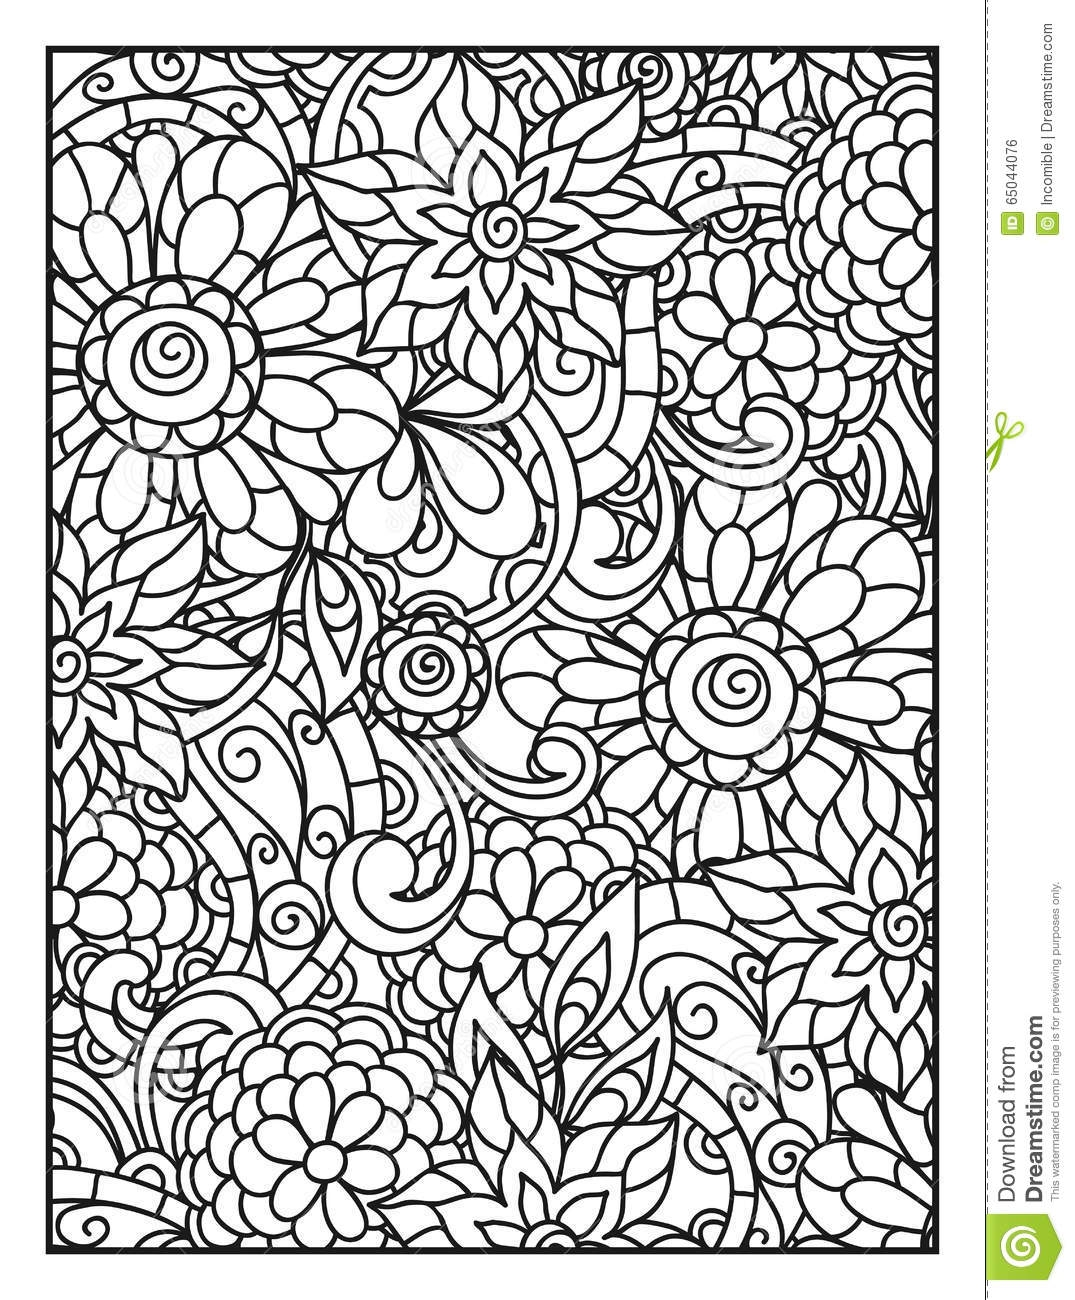 1075x1300 Downloadable Adult Coloring Pages Pictures Free Coloring Pages